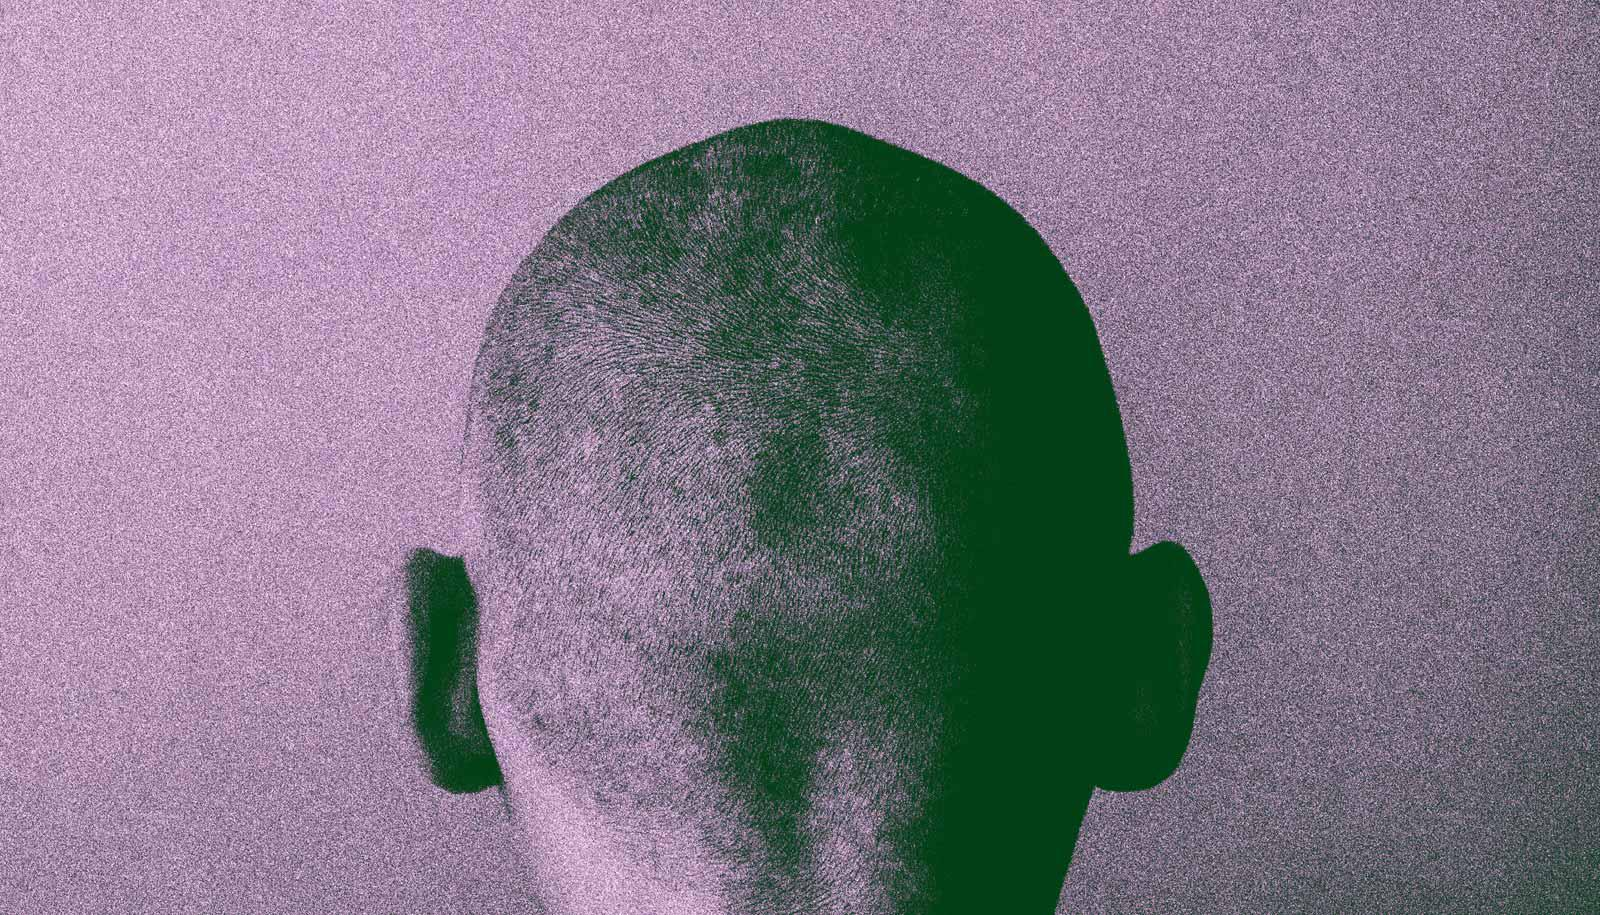 purple grainy shot of back of man's head